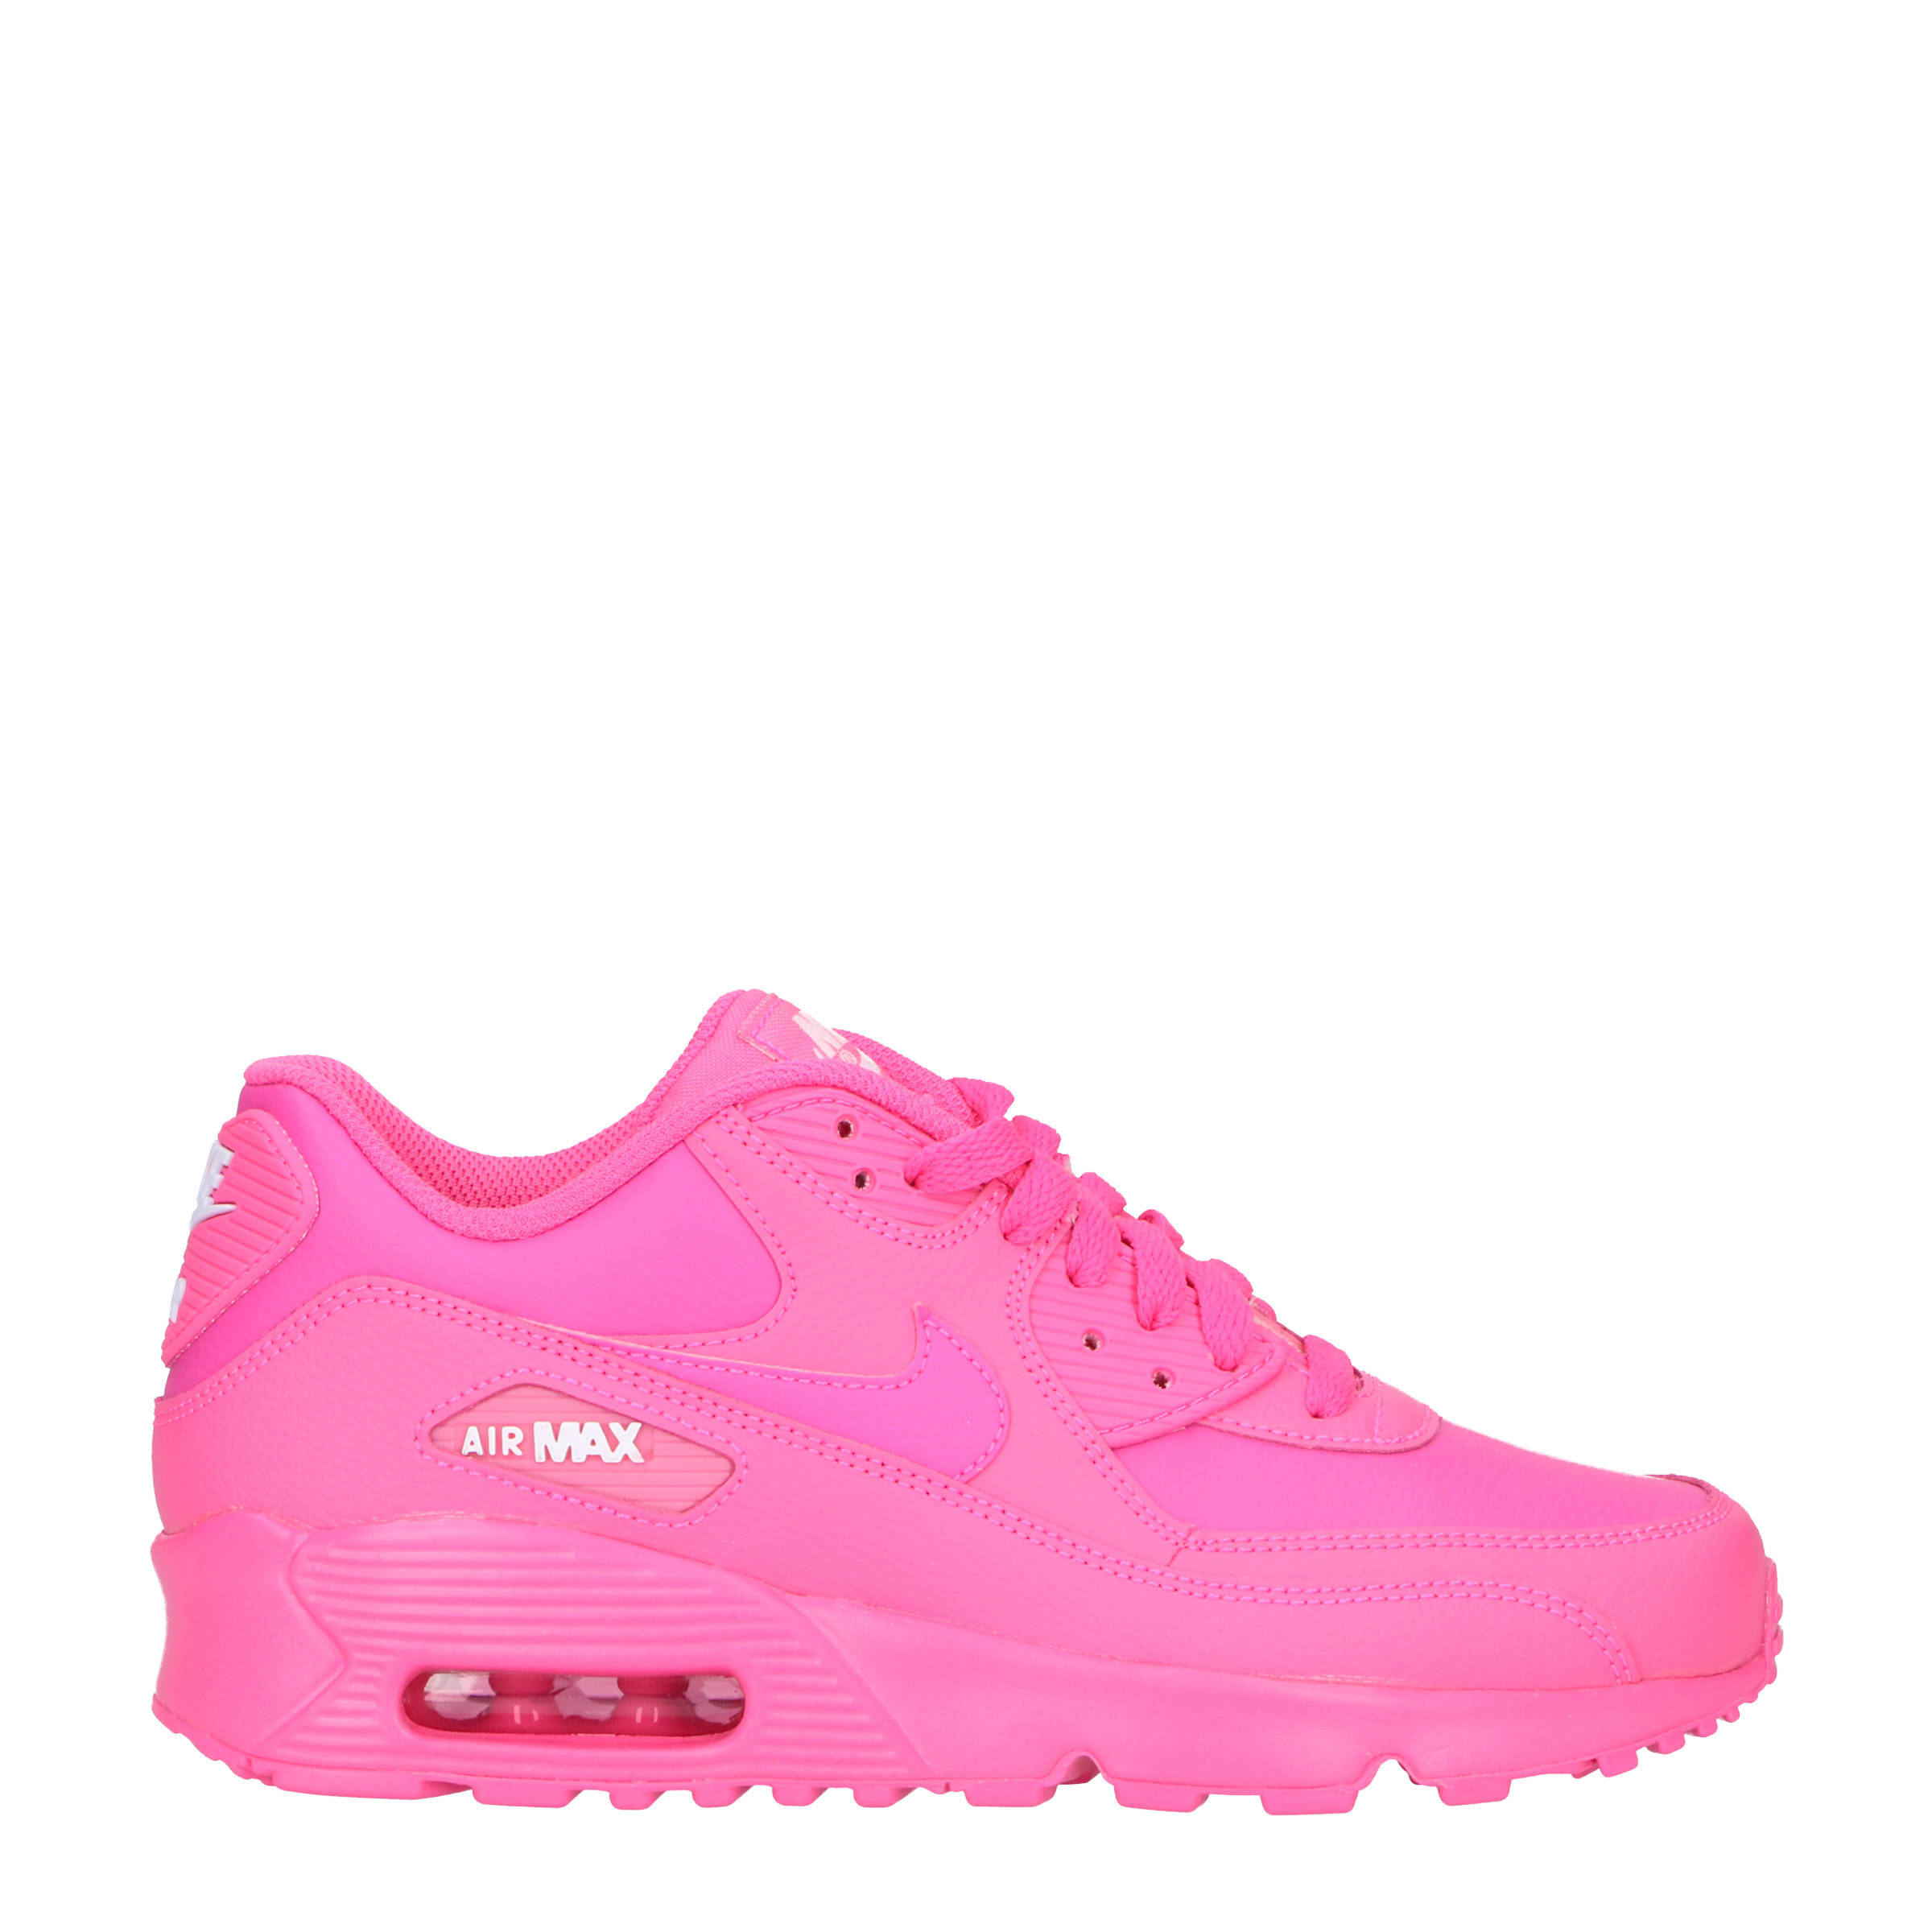 Air Max 90 Ltr sneakers fuchsia